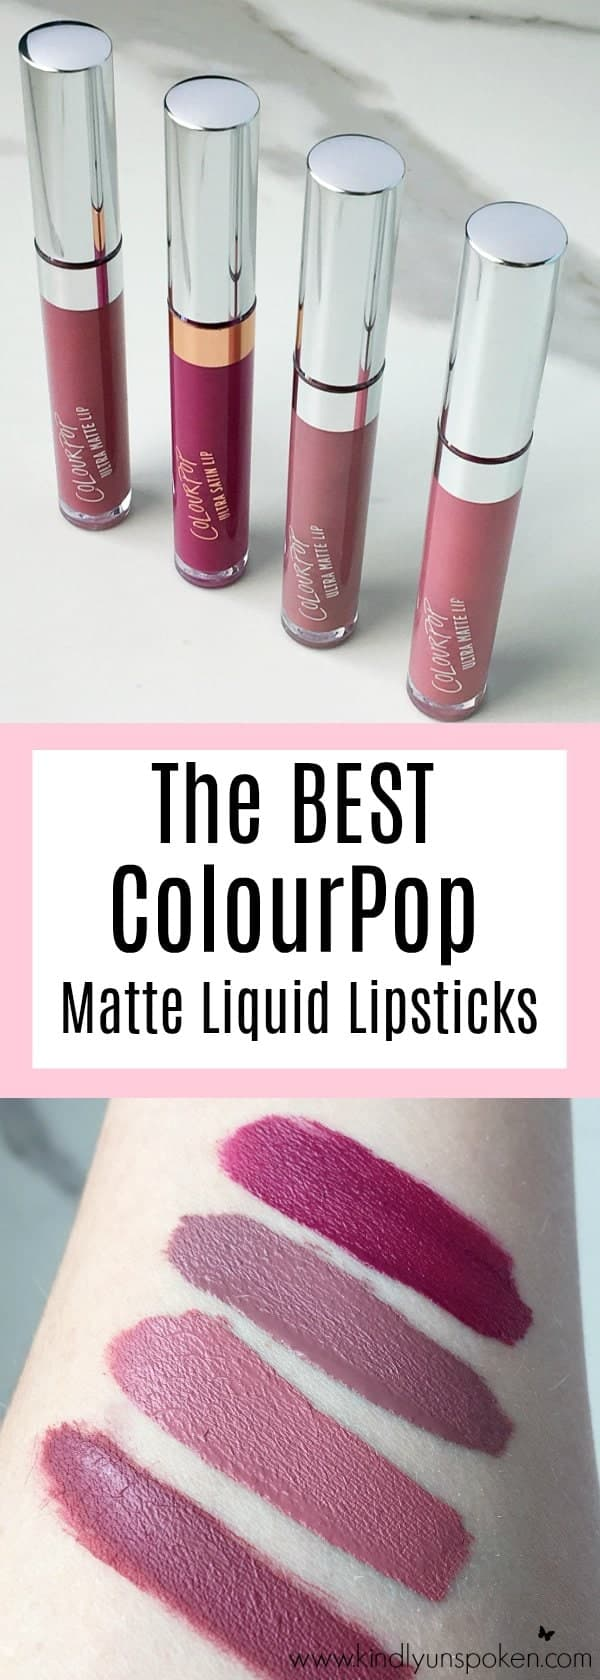 Best ColourPop Lipsticks- Review + Swatches: Today I'm sharing the Best ColourPop Lipsticks, which are beautiful, affordable, and every lipstick lover needs in their makeup collection! Sharing a full review and swatches of ColourPop liquid lipsticks and lippie stix and my favorite shade recommendations.